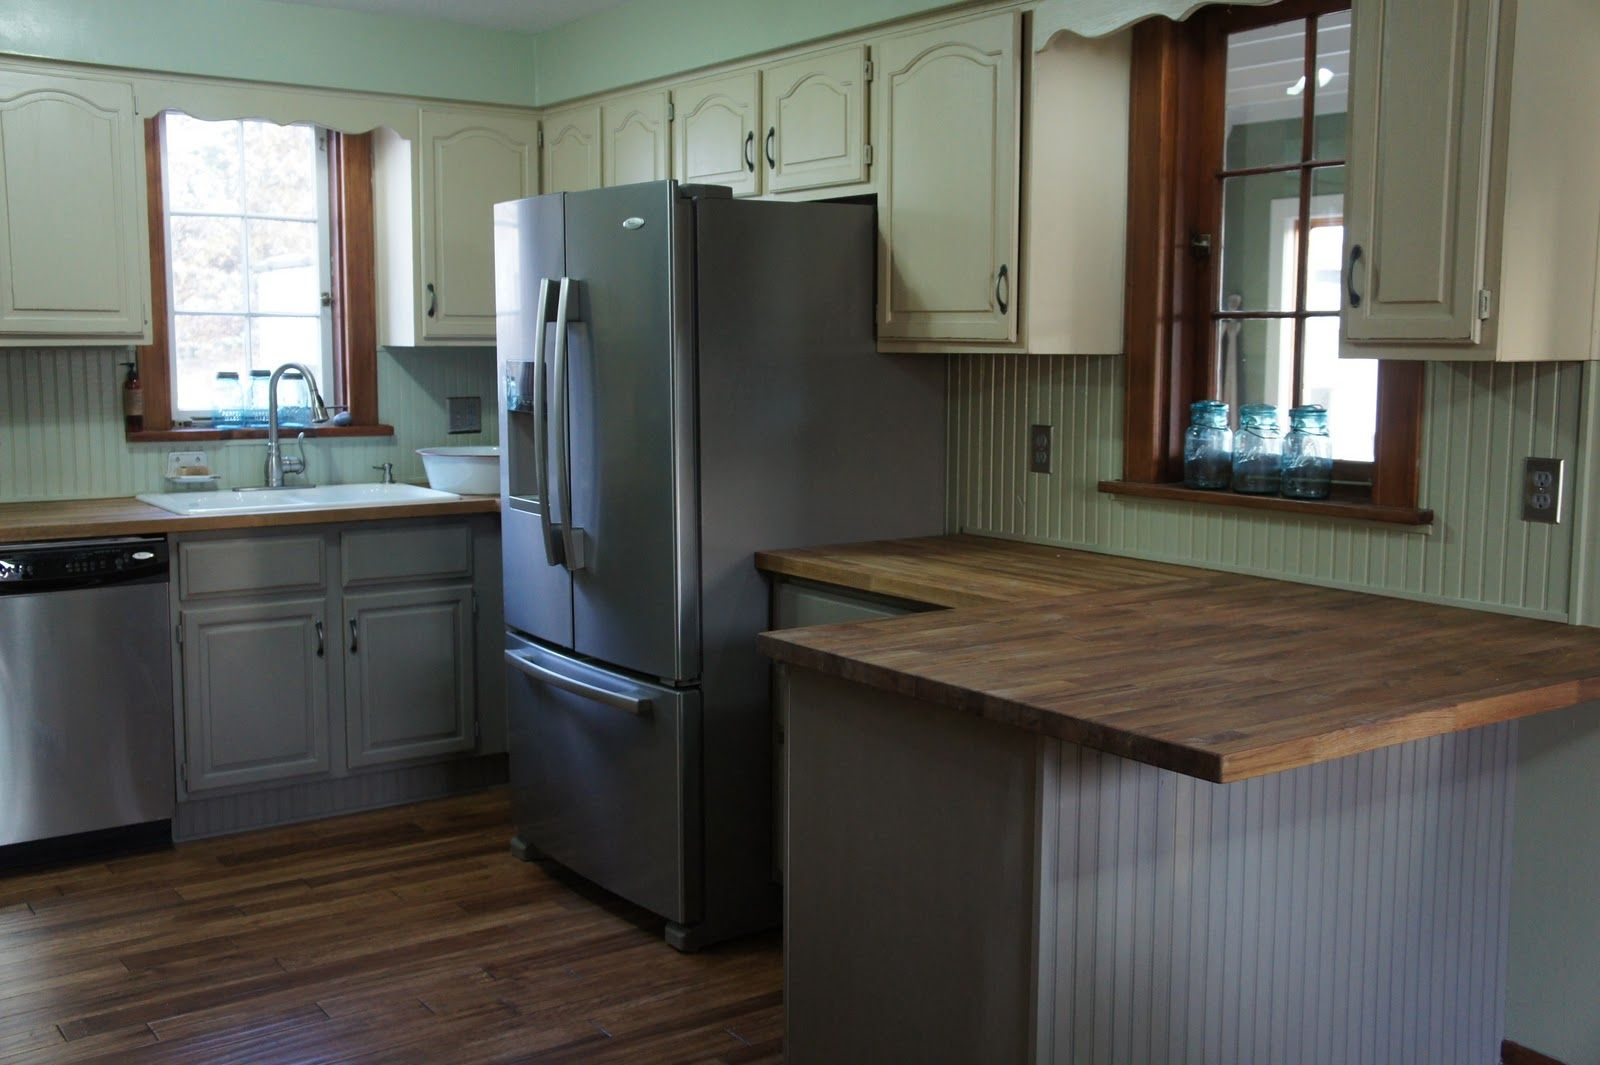 Kitchen trends for 2015 slate gray fridge and appliances for Chalkboard appliance paint